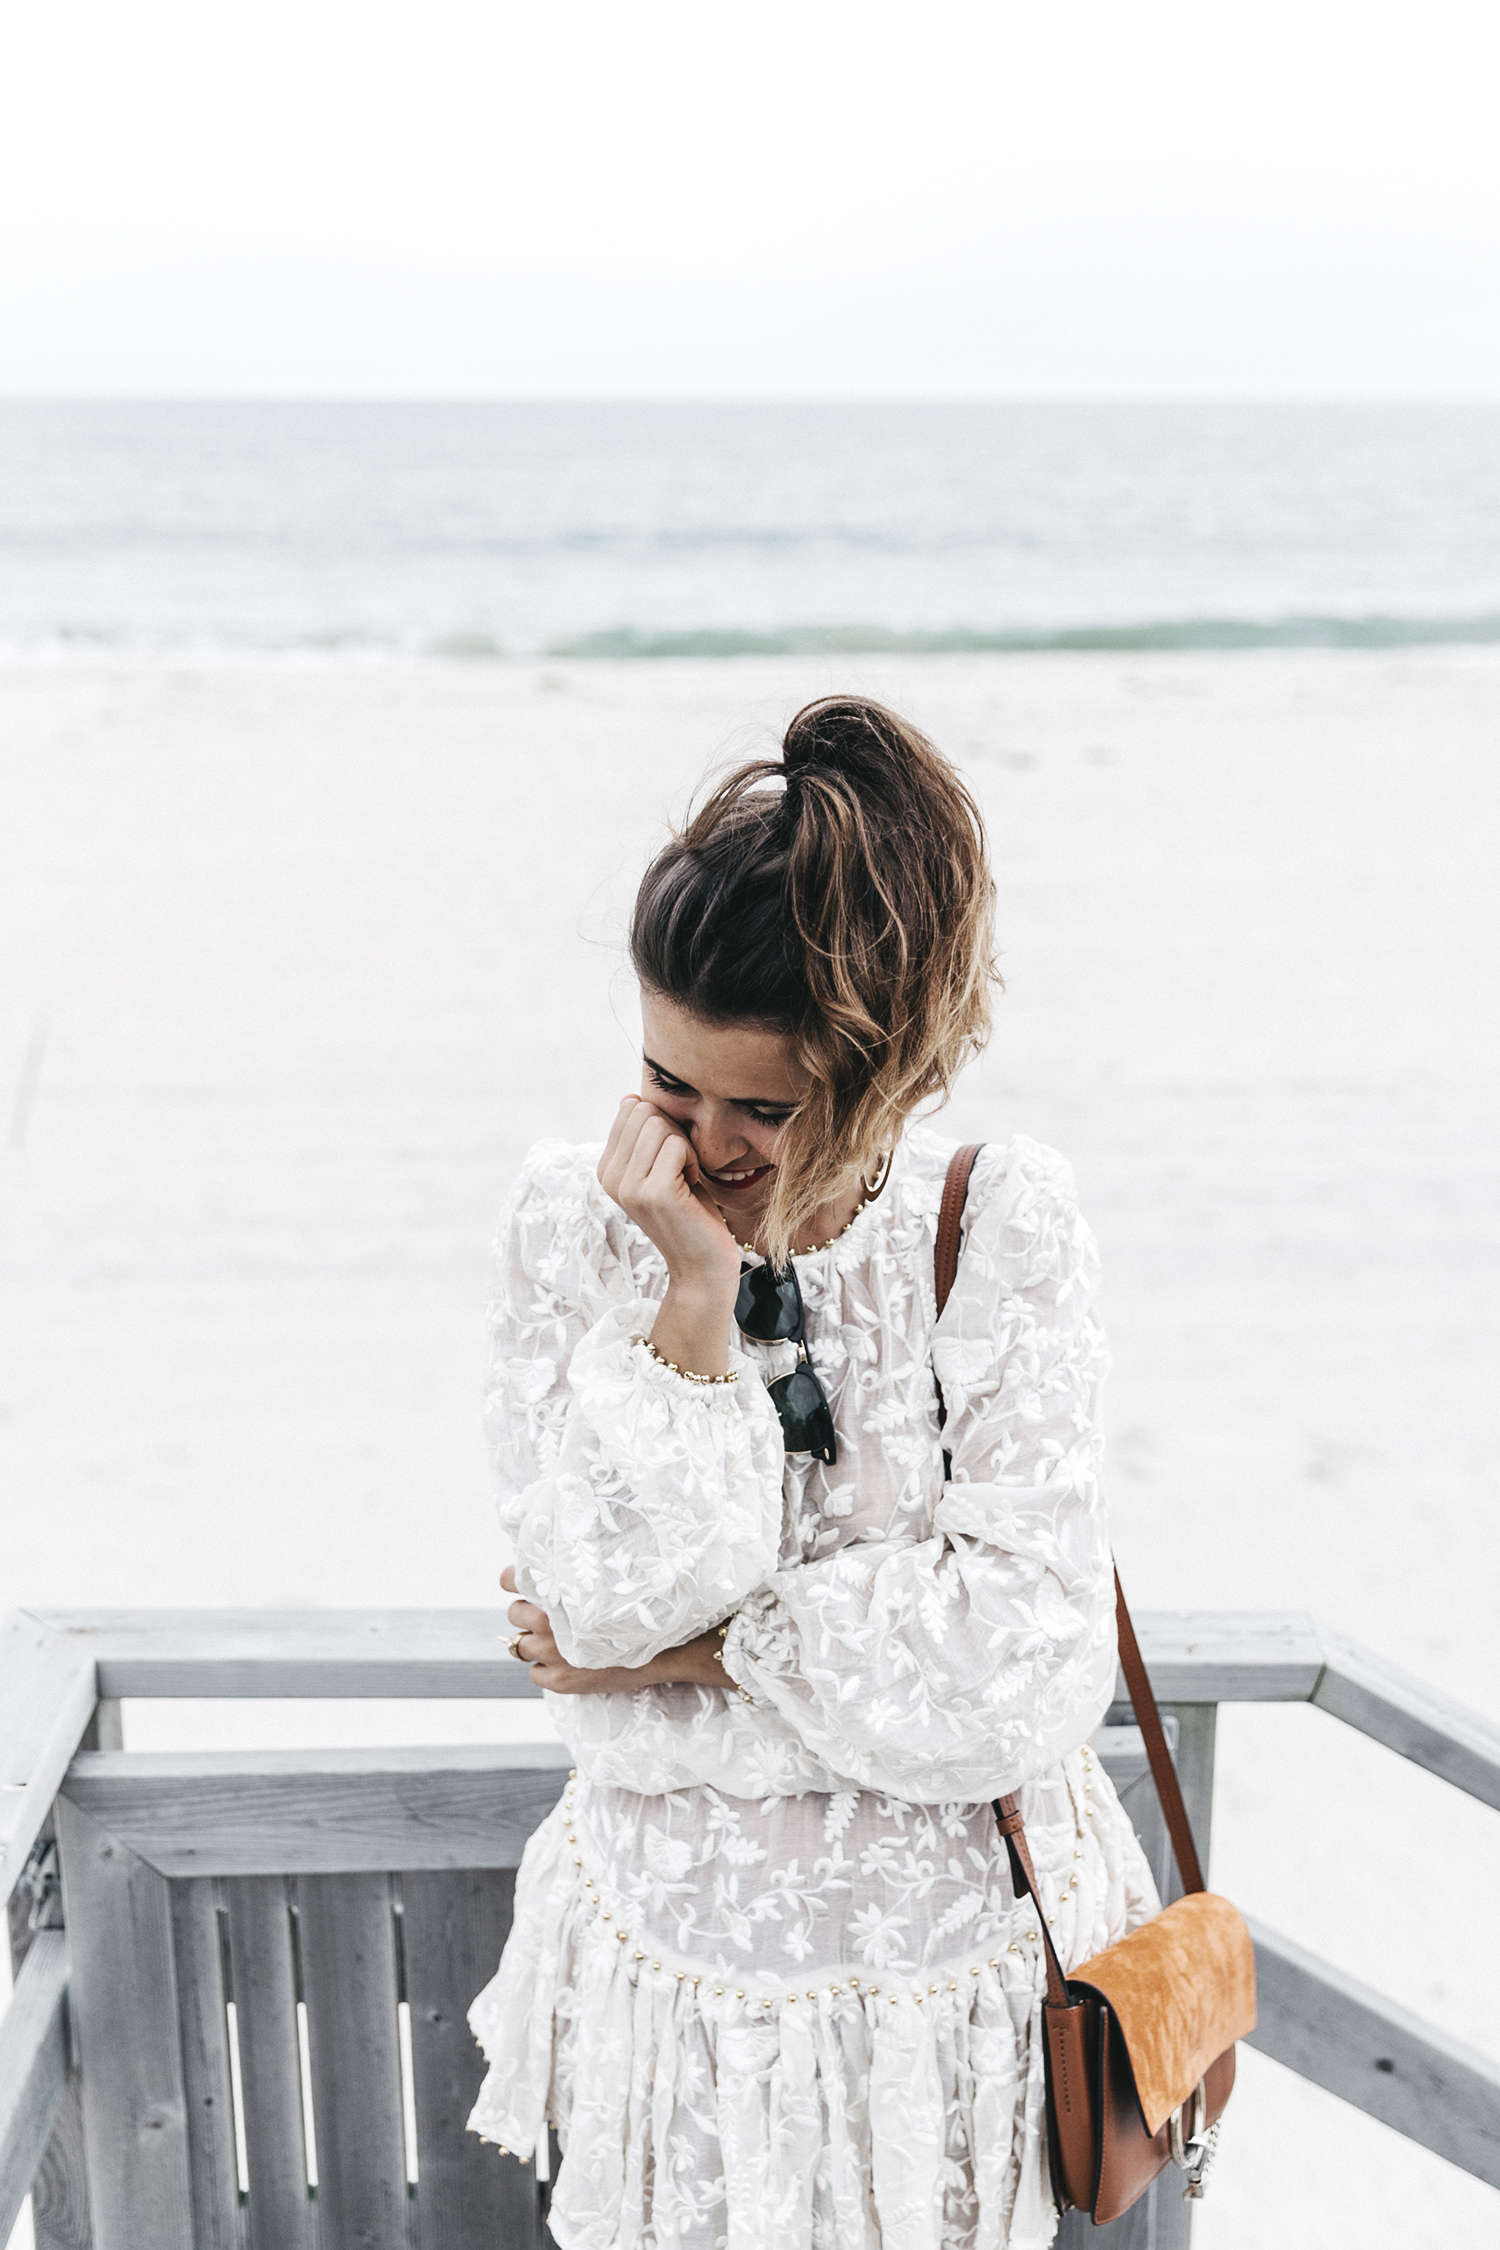 Revolve_in_The_Hamptons-Zimmermann-Embroidered_Dress-WHite_Dress-Chloe_Fay_Bag-Chloe_Wedges-Outfit-134